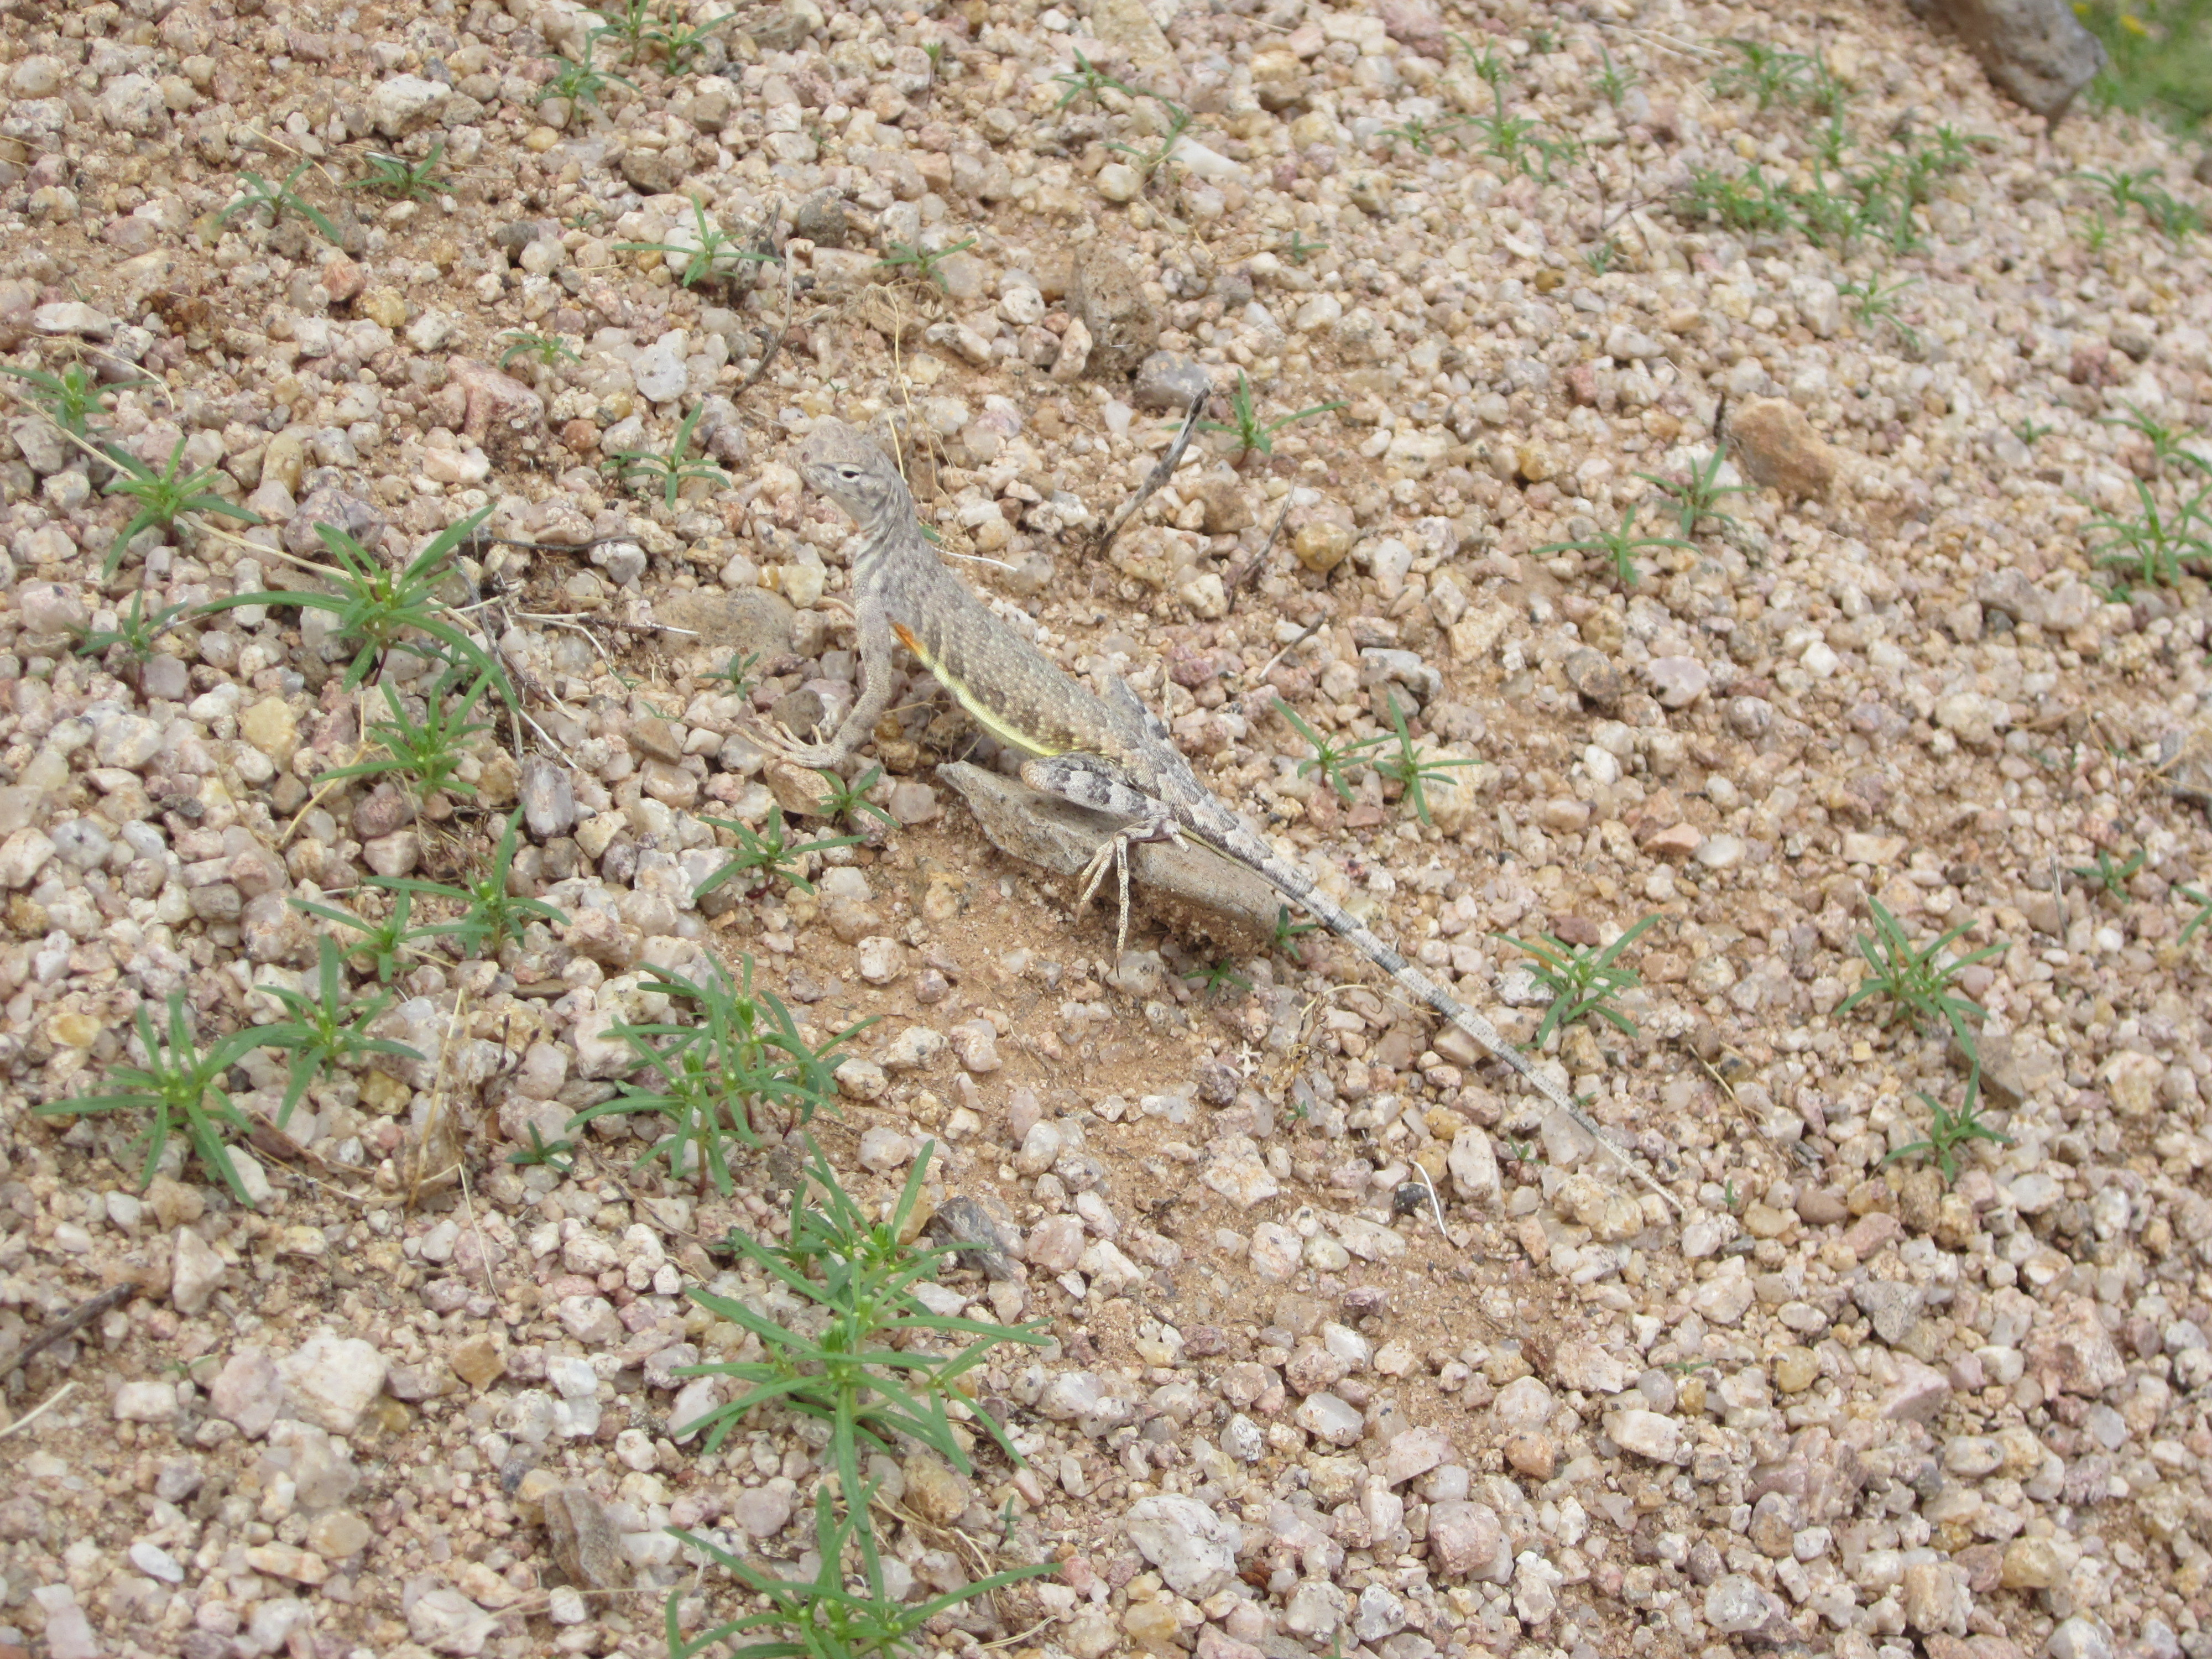 Western zebra-tailed lizard. If you look at the edge of its belly, you can see just a little bit of the brilliant colors that this lizard has underneath.